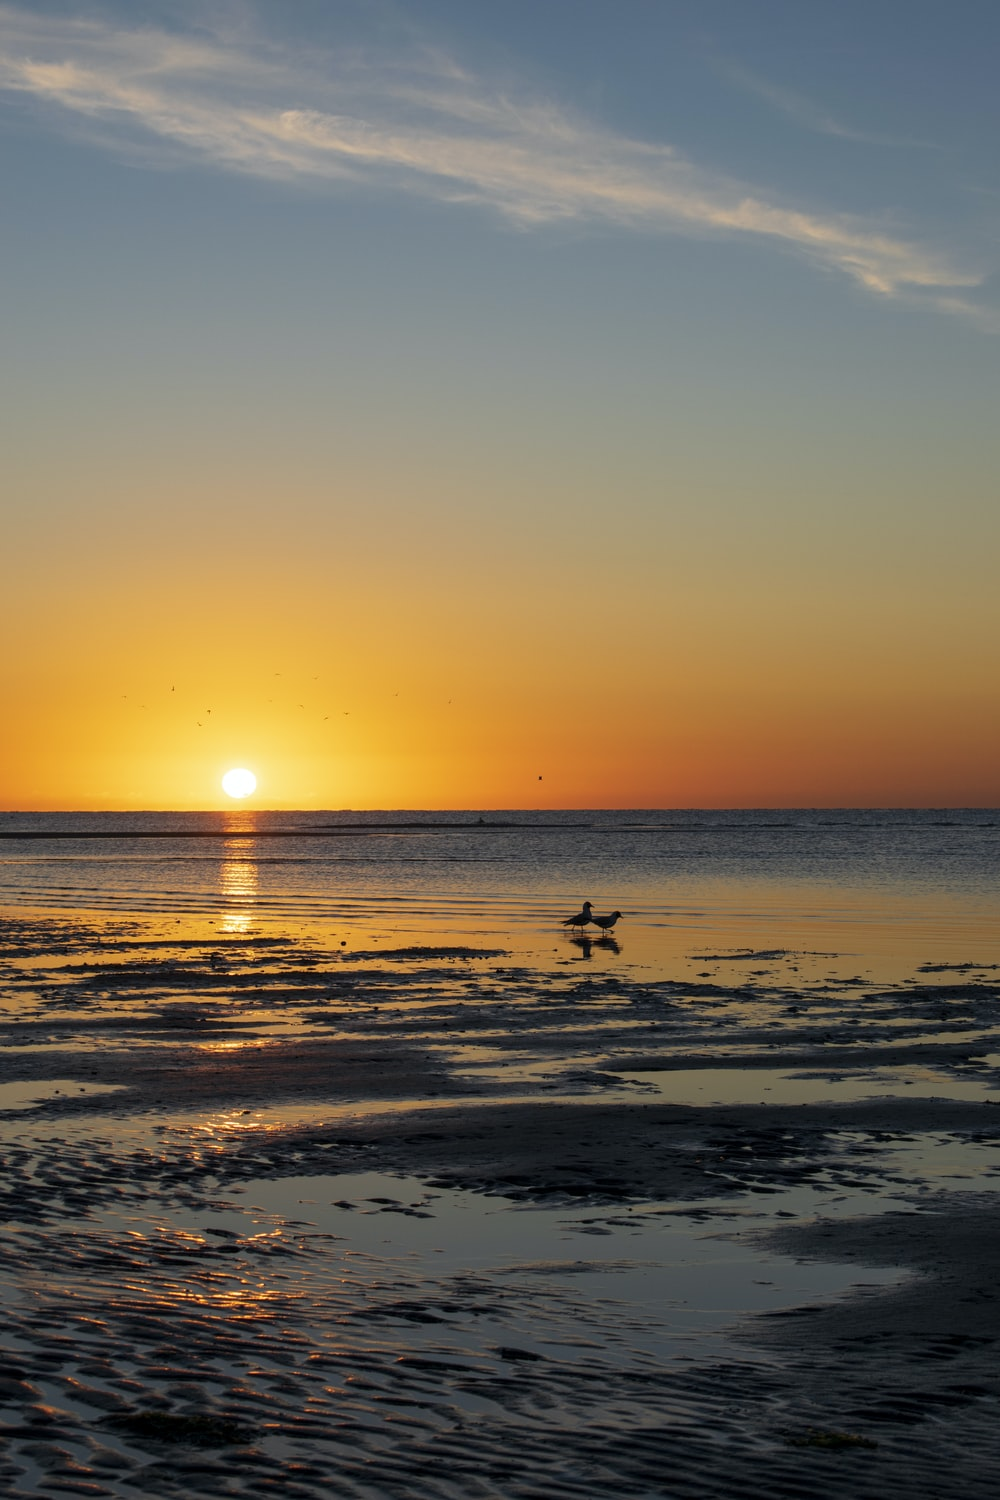 silhouette of birds on beach during sunset